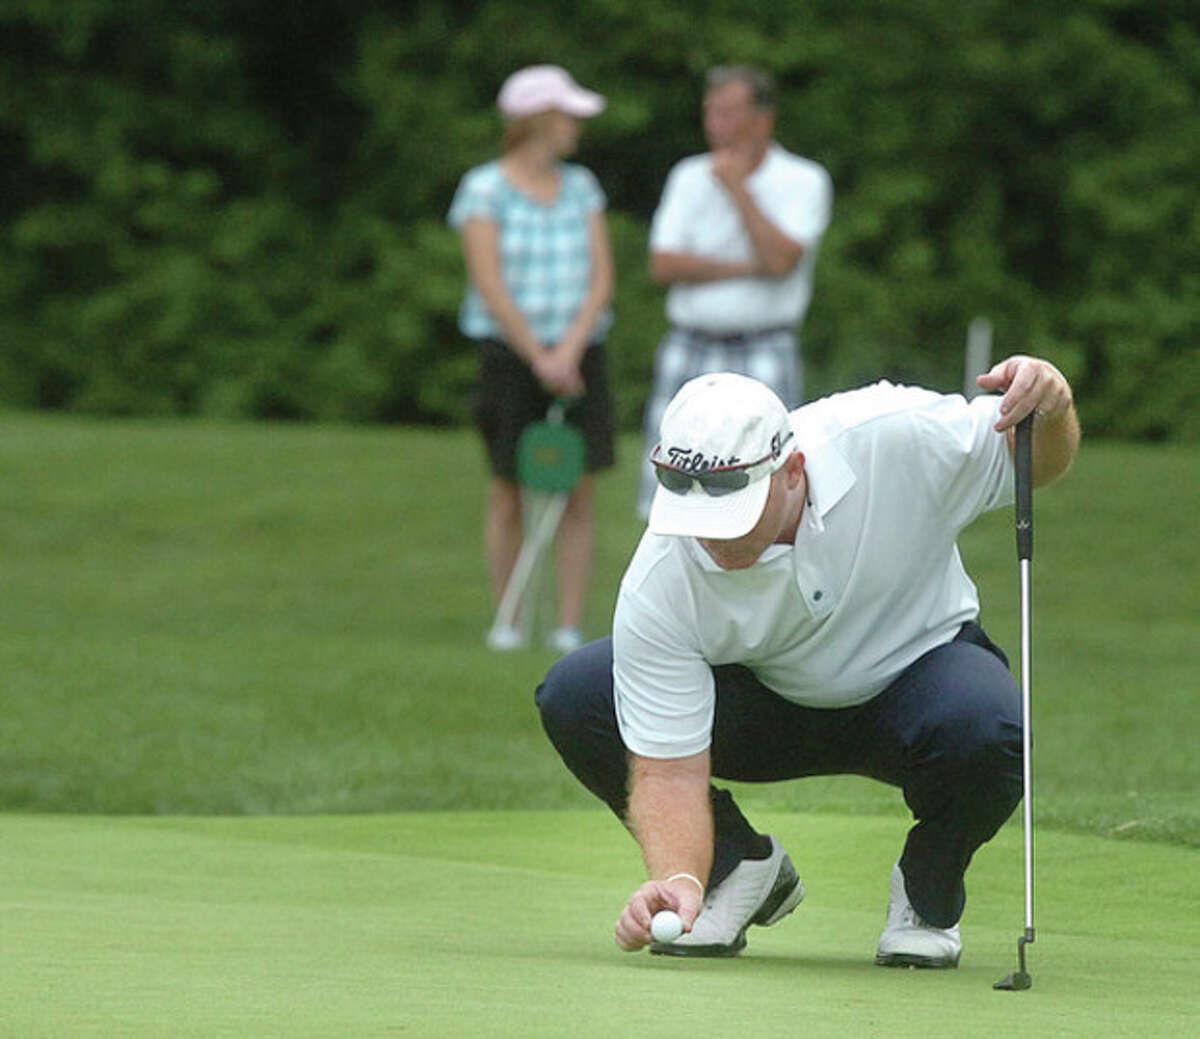 Hour photo/Alex von Kleydorff Frank Bensel of Norwalk re-places his ball while lining up a putt during the second round of the Connecticut Open at Wee Burn Country Club in Darien. The defending champ, Bensel shot 75 and is four shots off the lead.